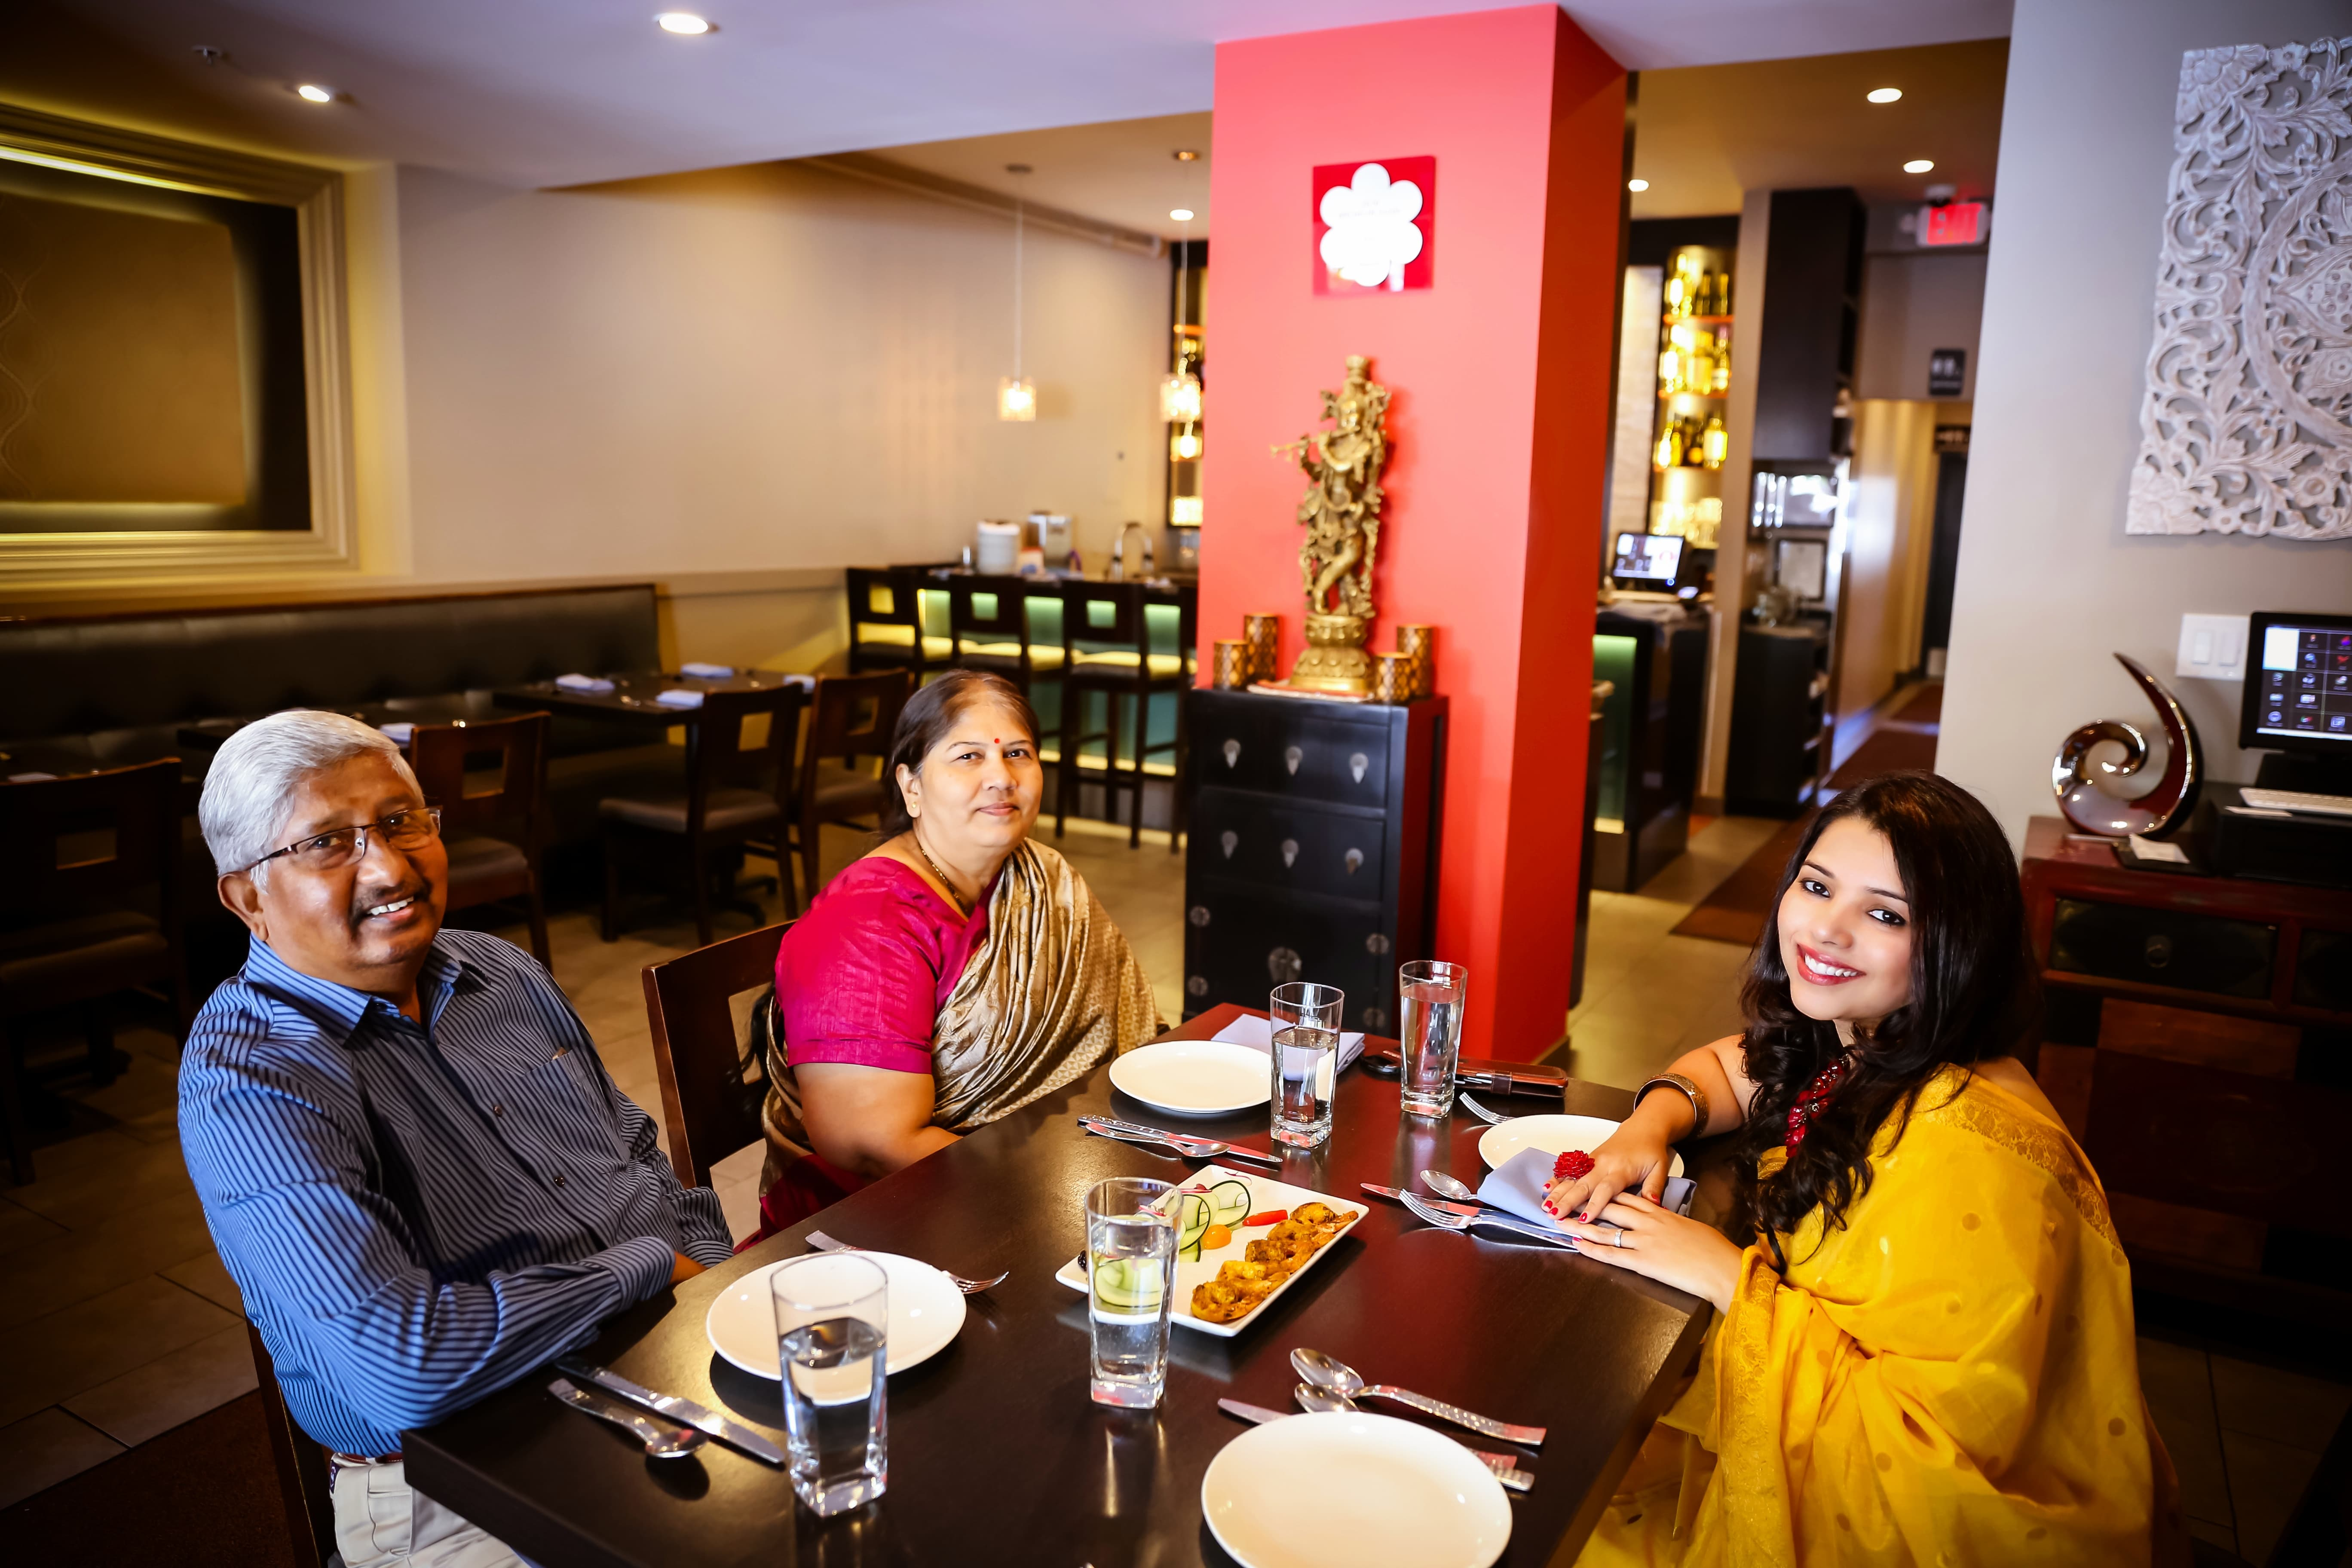 rasa indian restaurant, michelin star restaurants, indian restaurants, bay area restaurants, indian food